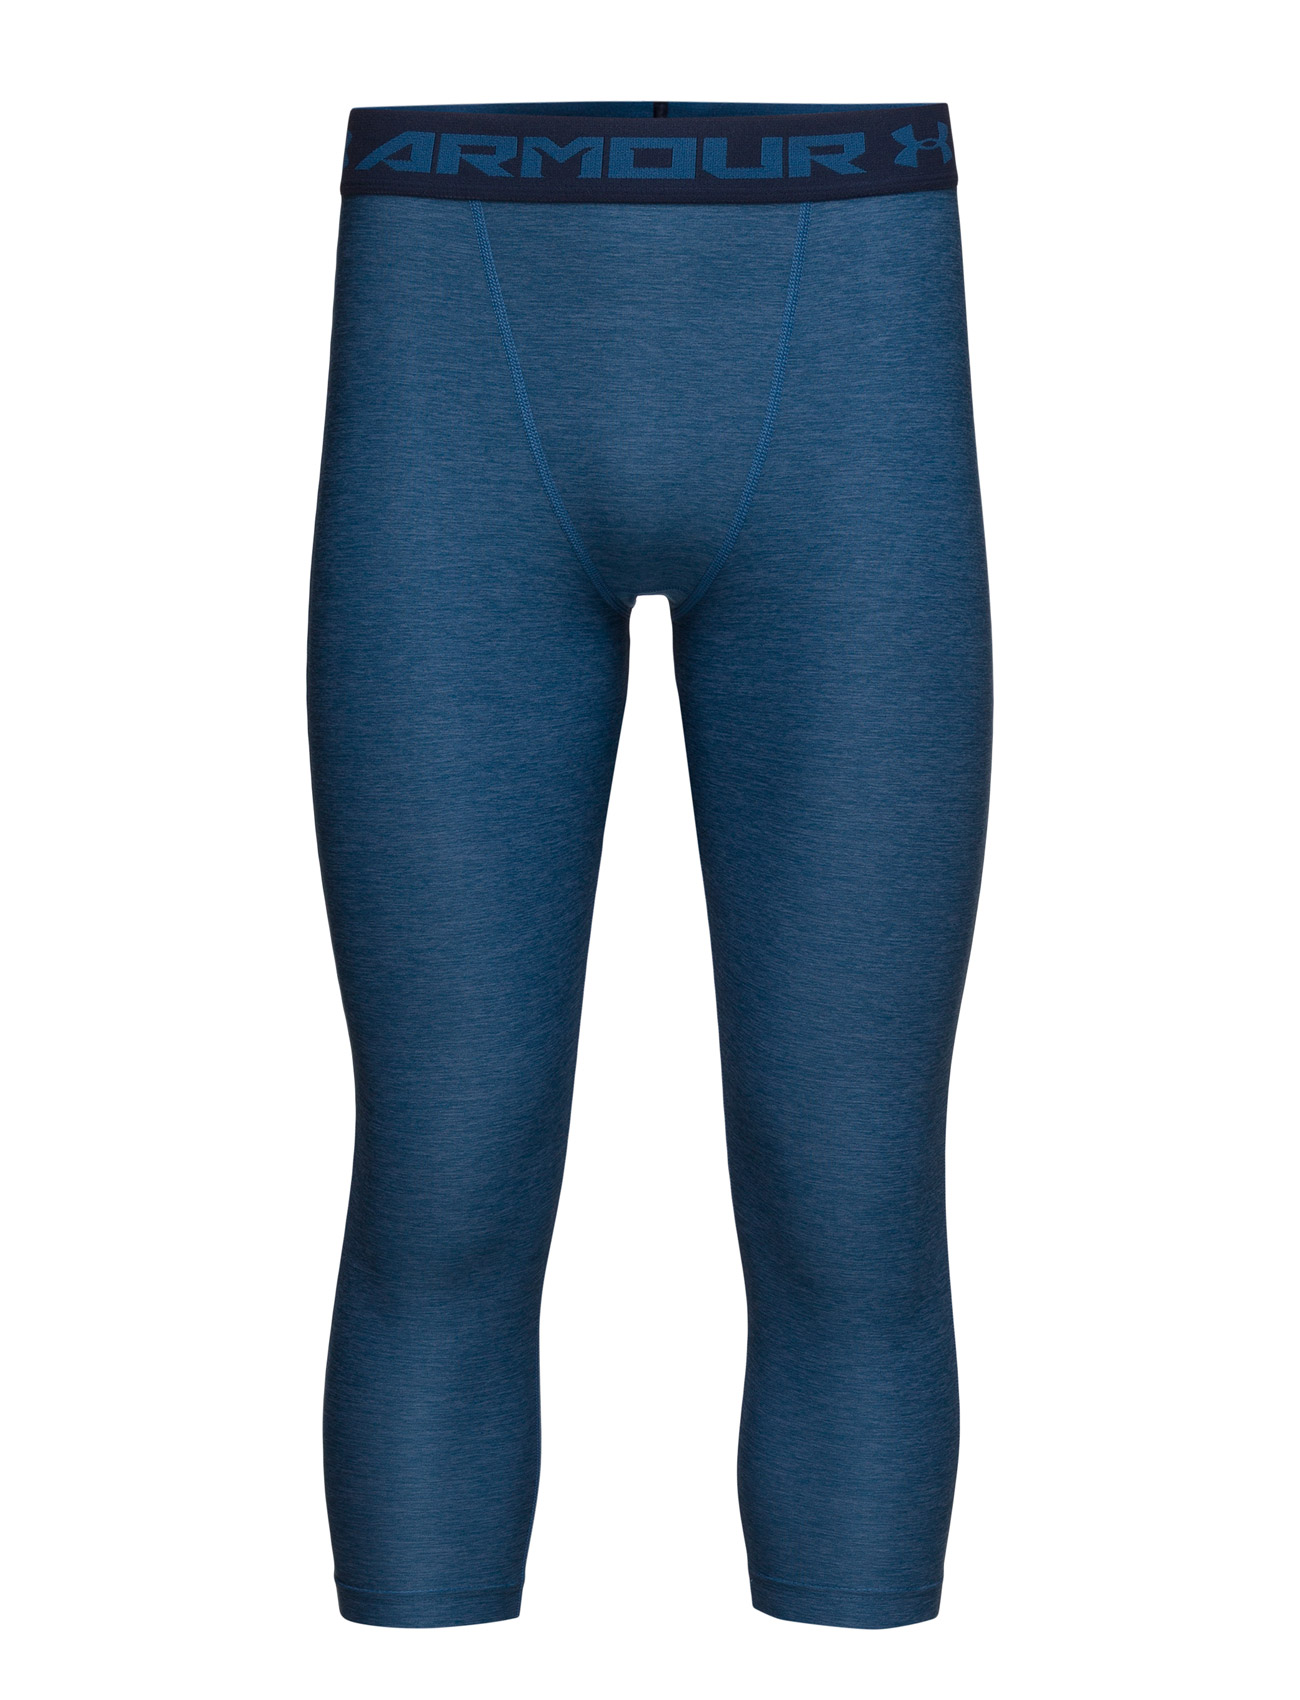 Hg Armour Twist 3/4 Legging Under Armour Undertøj til Mænd i